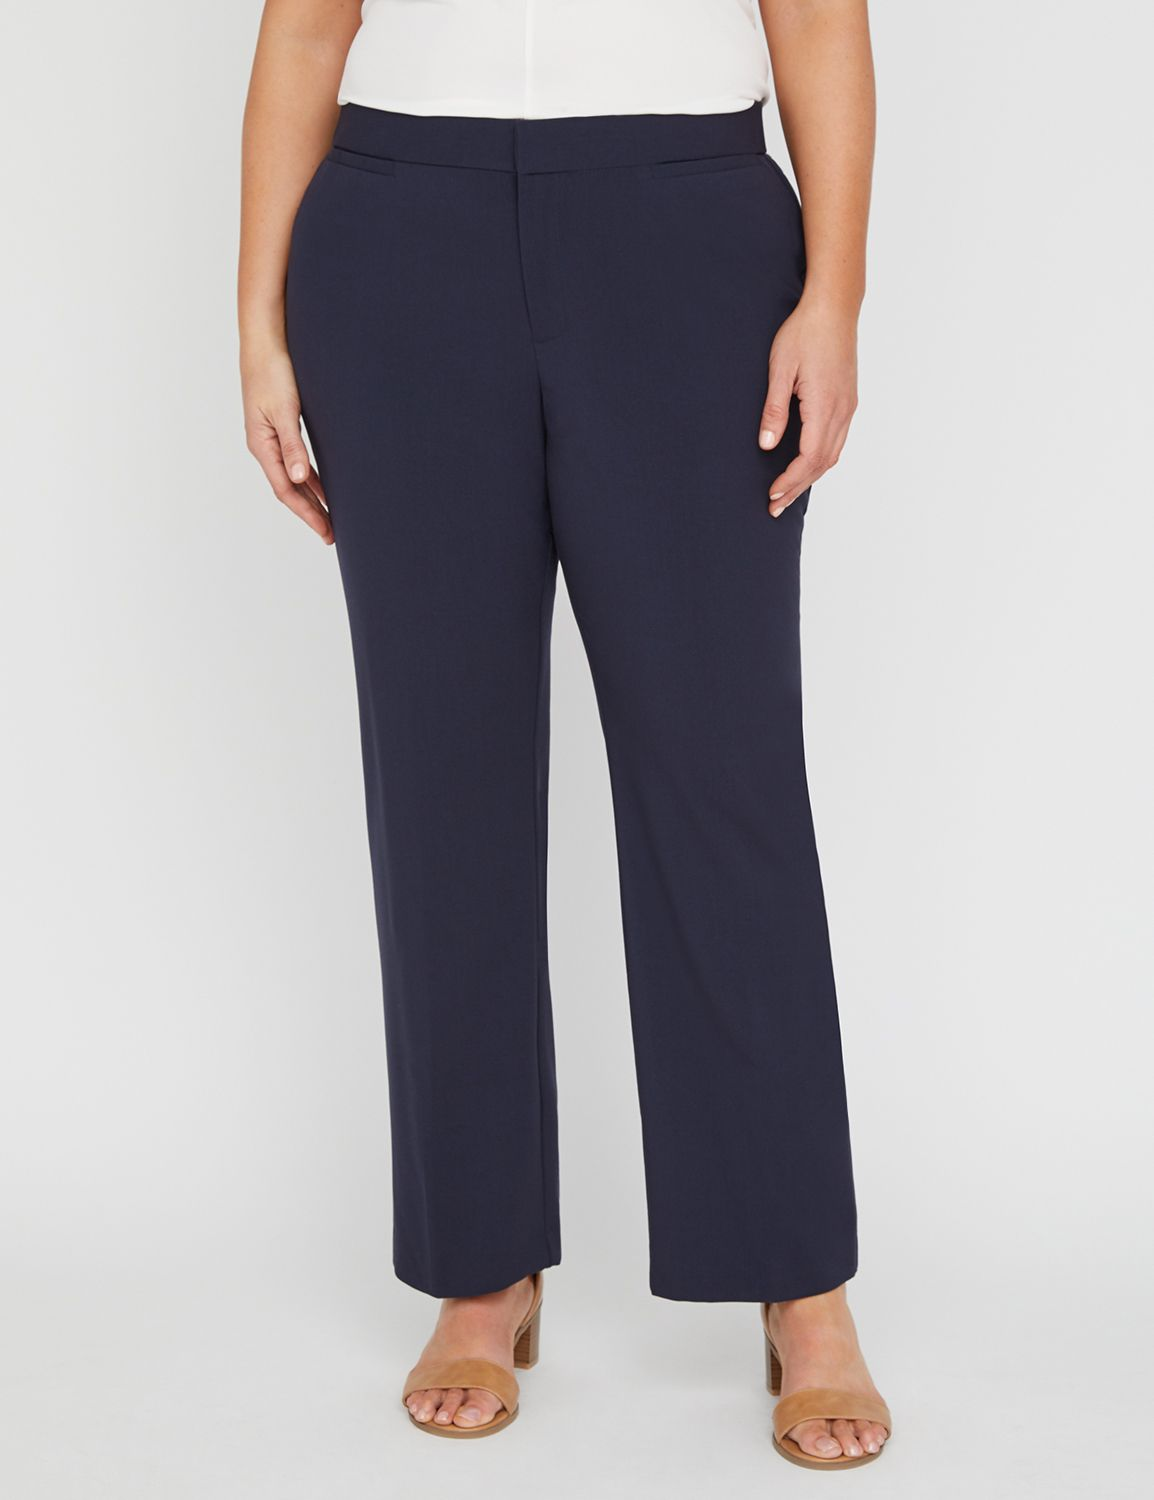 Right Fit Pant (Moderately Curvy) Right Fit Pant (Moderately Curvy) MP-300043670